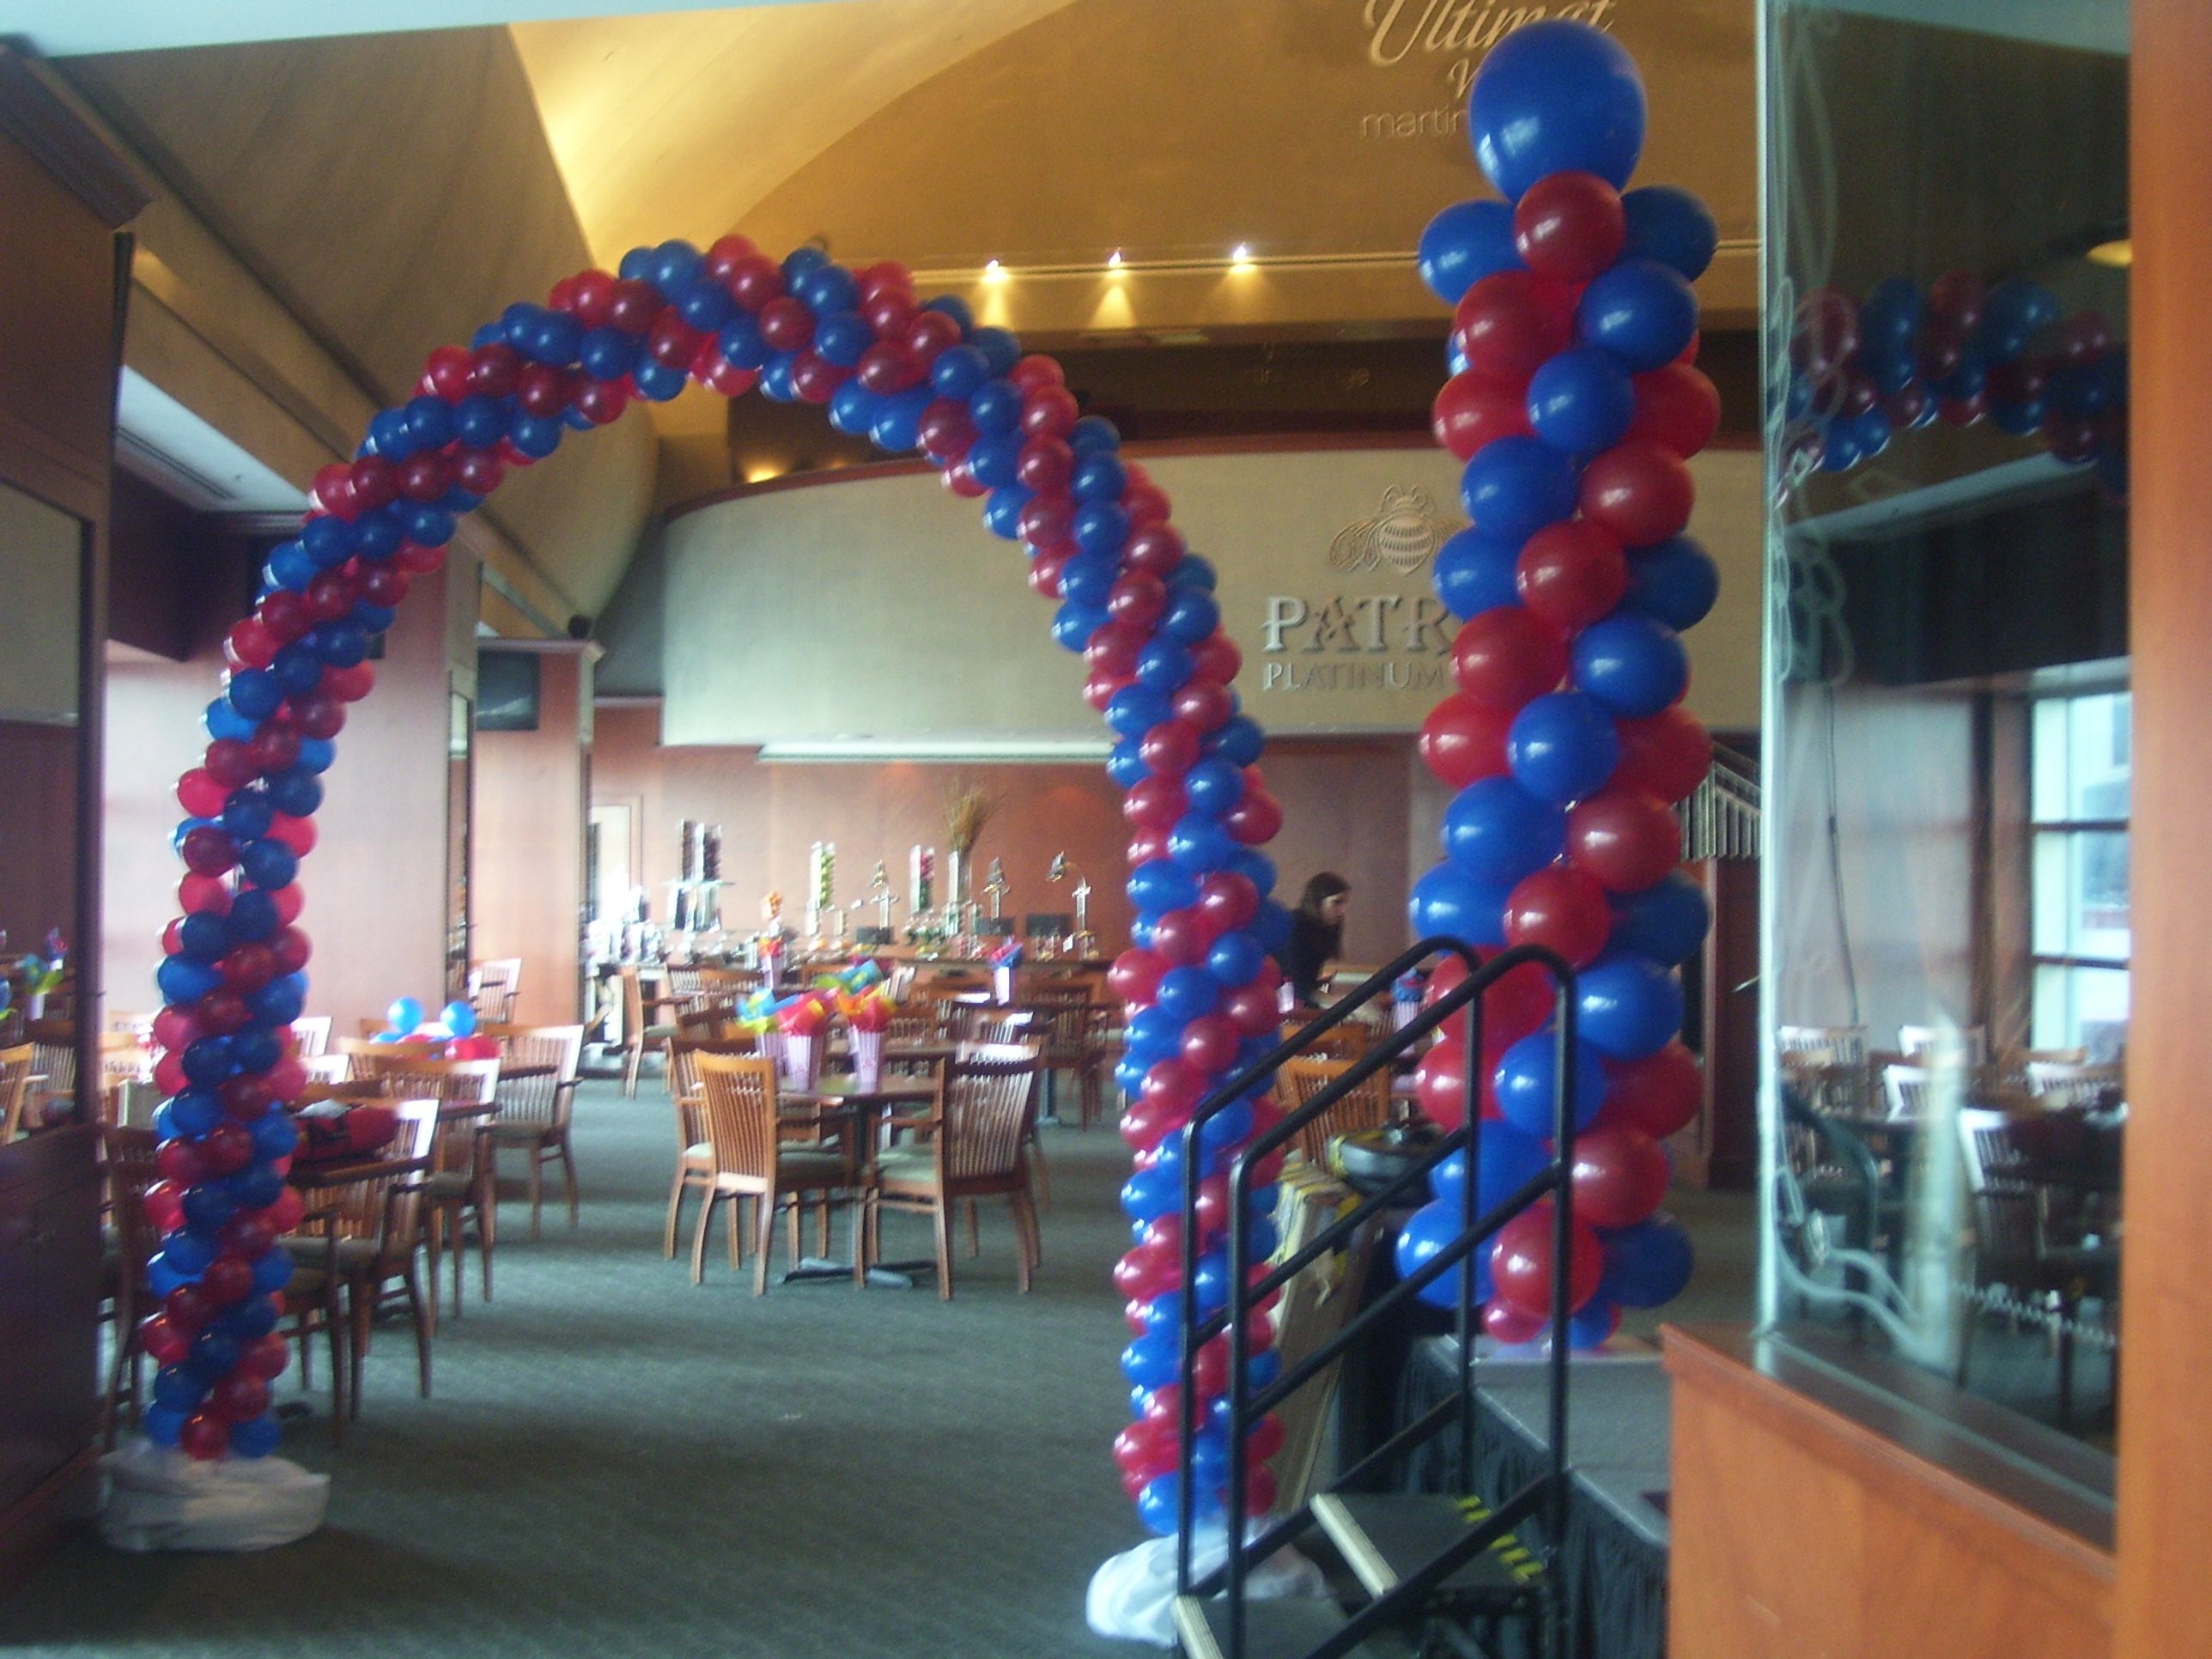 Airfilled Columns and Arch Balloon Decorations by